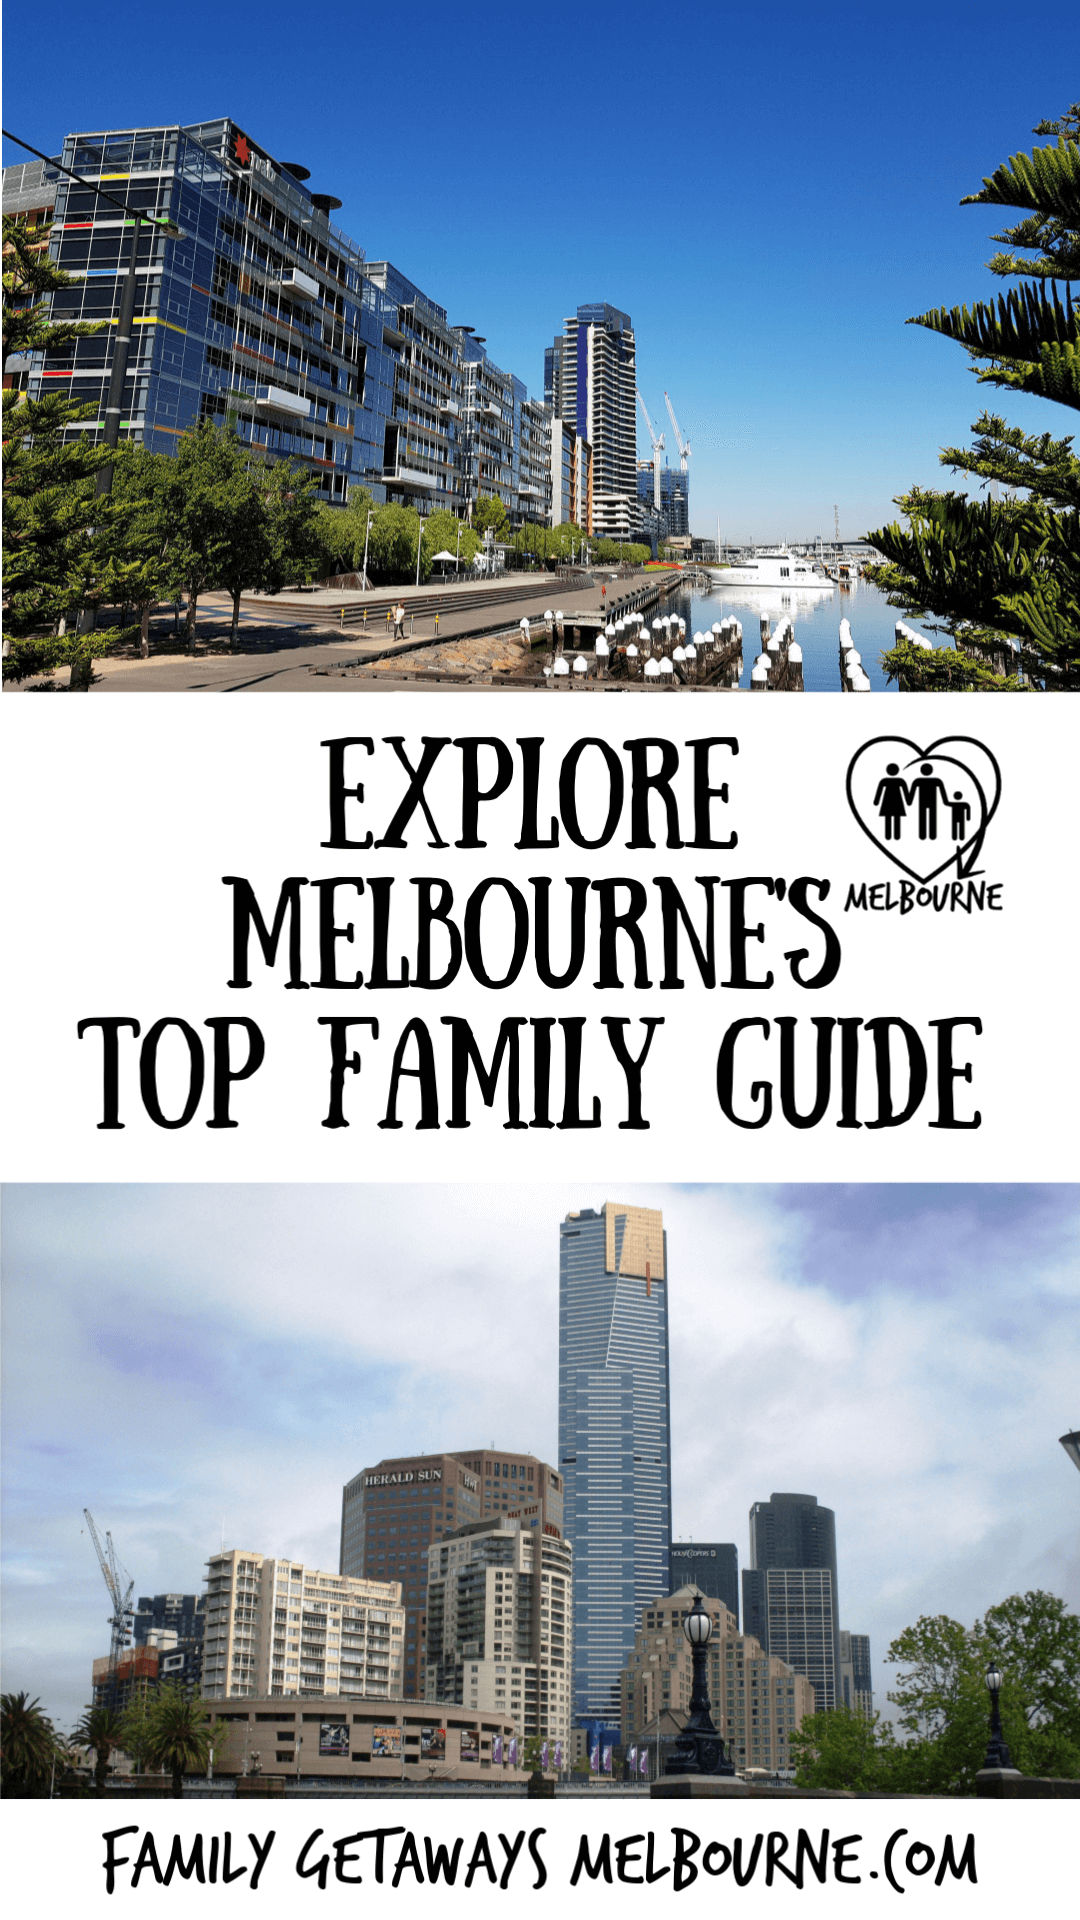 Melbourne, Australia, no other city is like it. Something for all the family to explore. Unique, diverse and exciting.